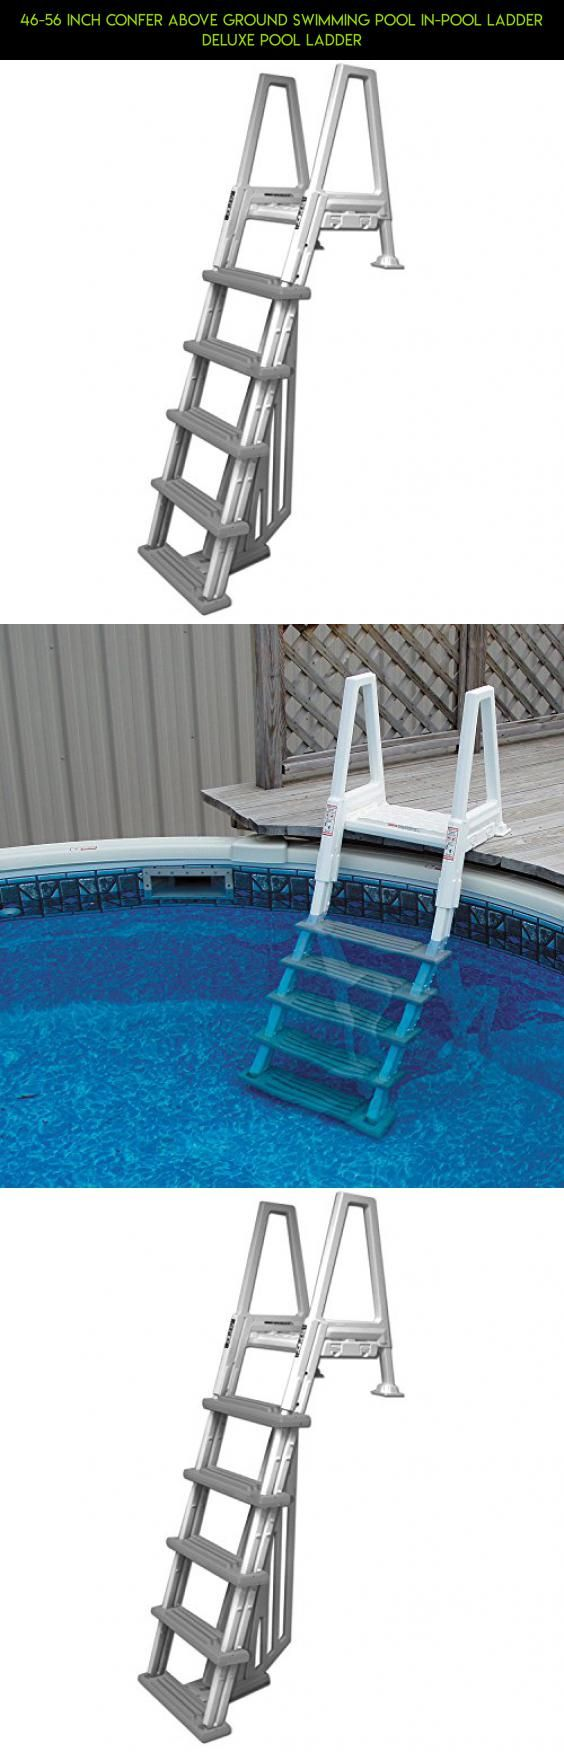 Best 25 Above Ground Pool Ladders Ideas On Pinterest Above Ground Pool Steps Pool Steps And